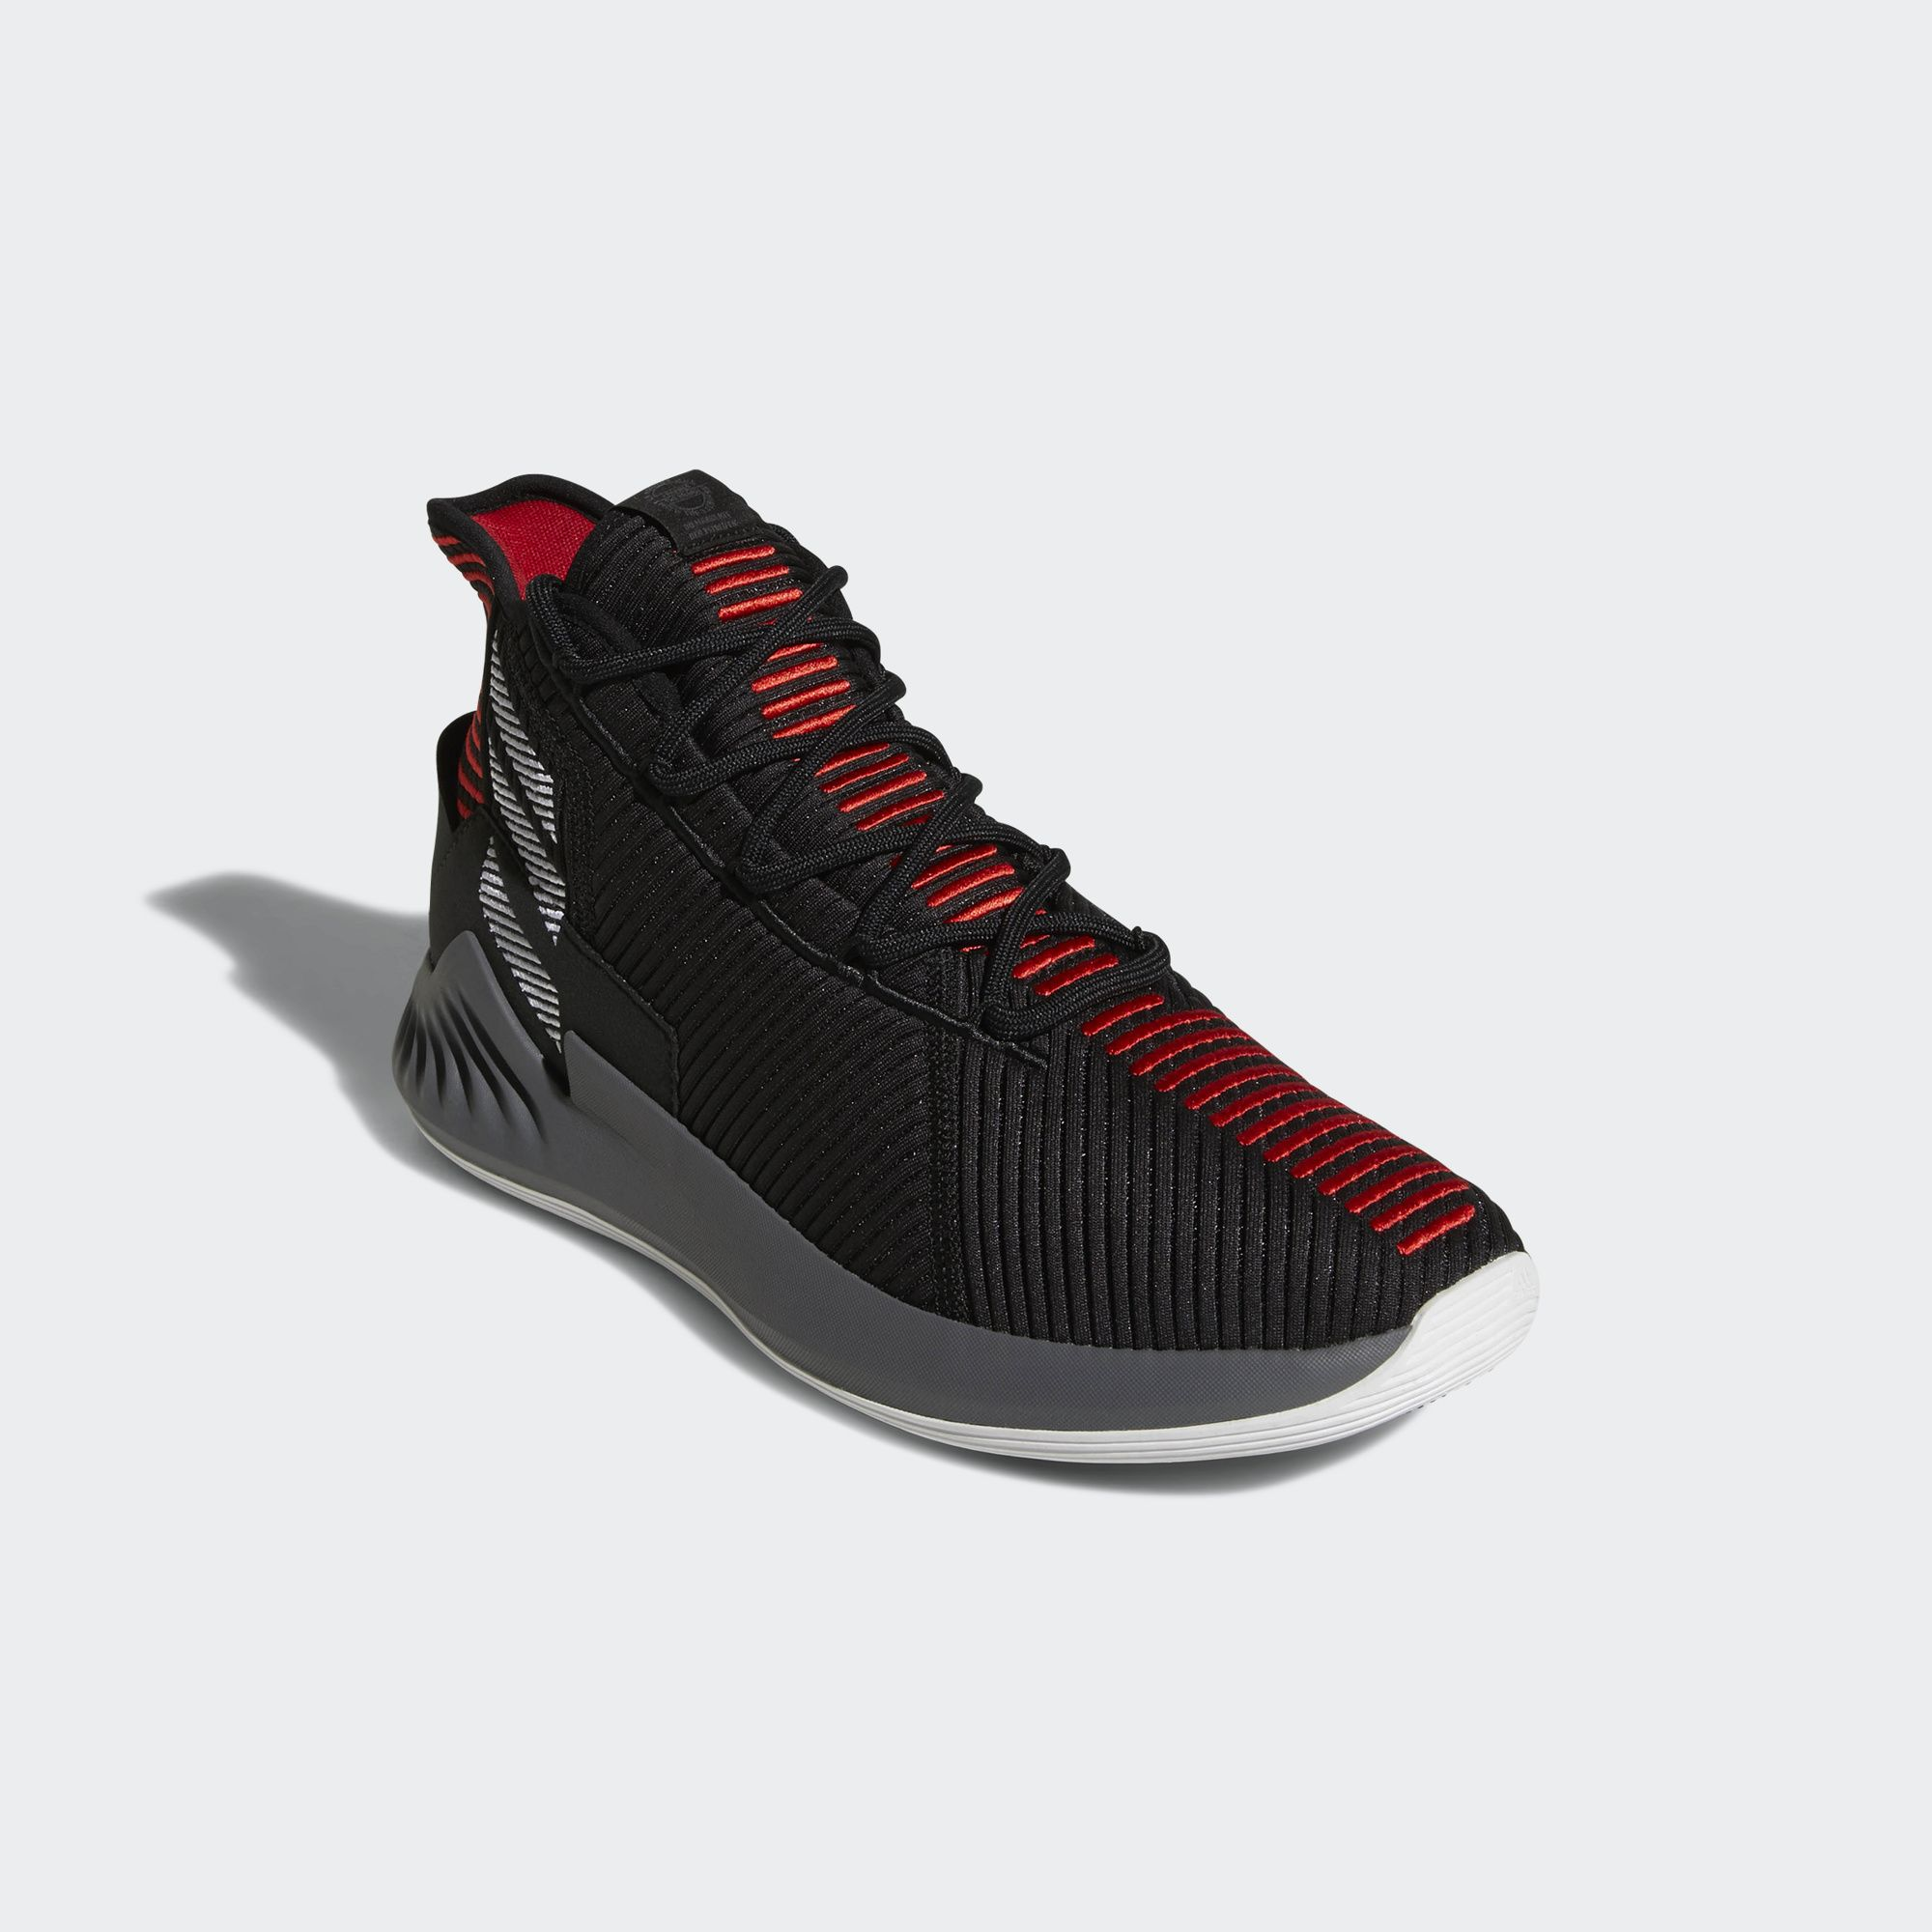 adidas rose 9 official 4